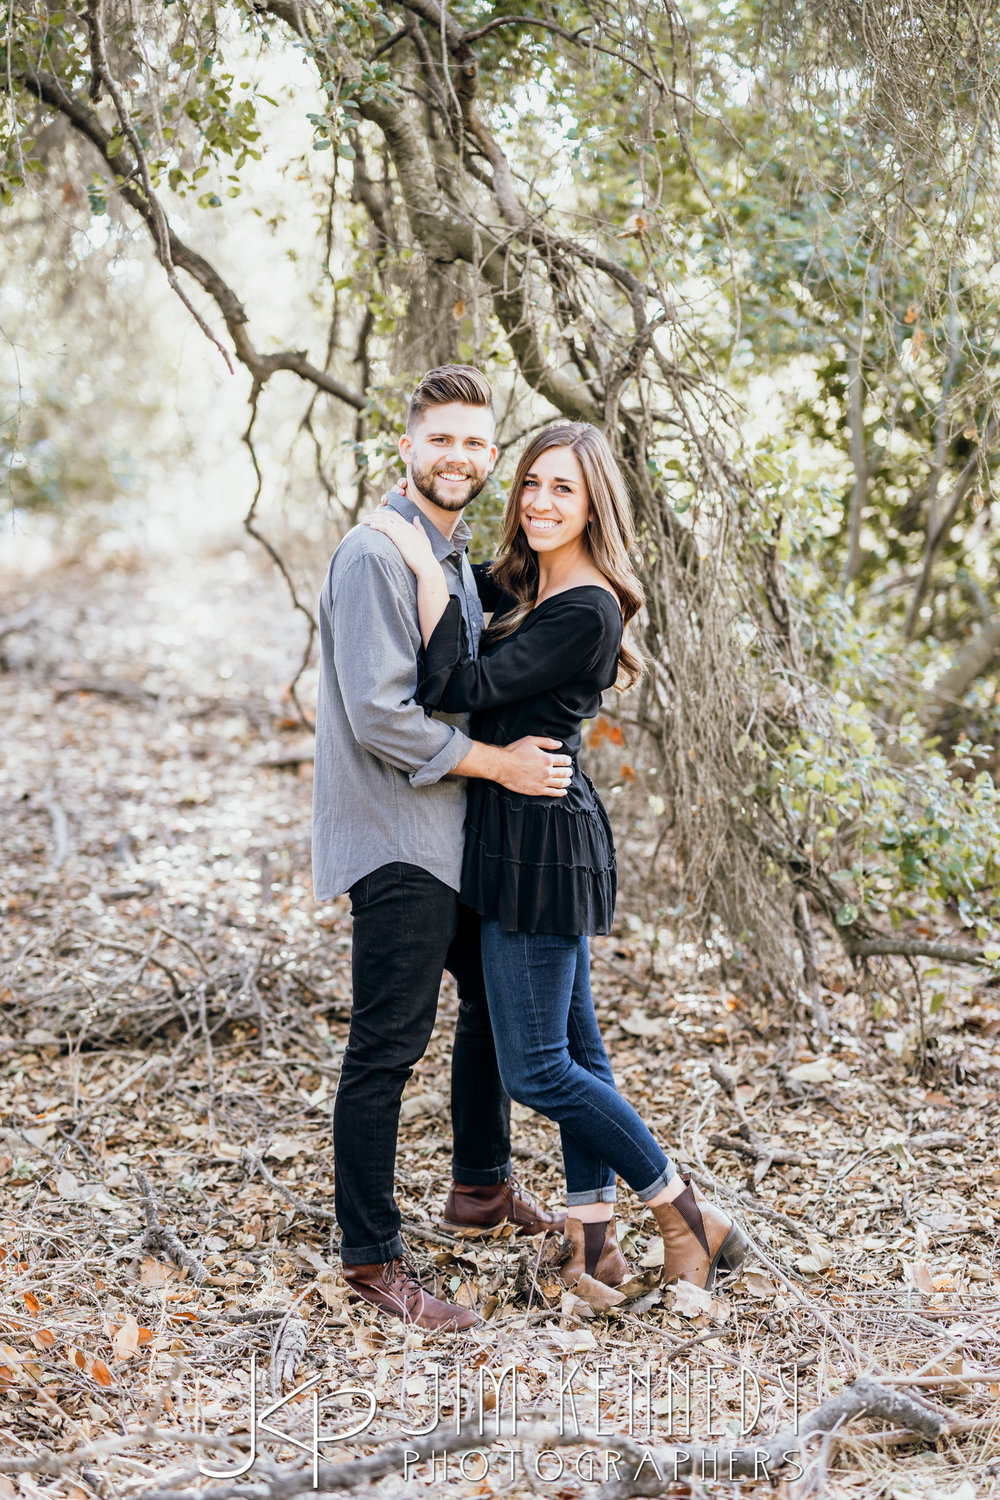 thomas-f-riley-wilderness-park-engagement-session-Leah-tyler_0001.JPG